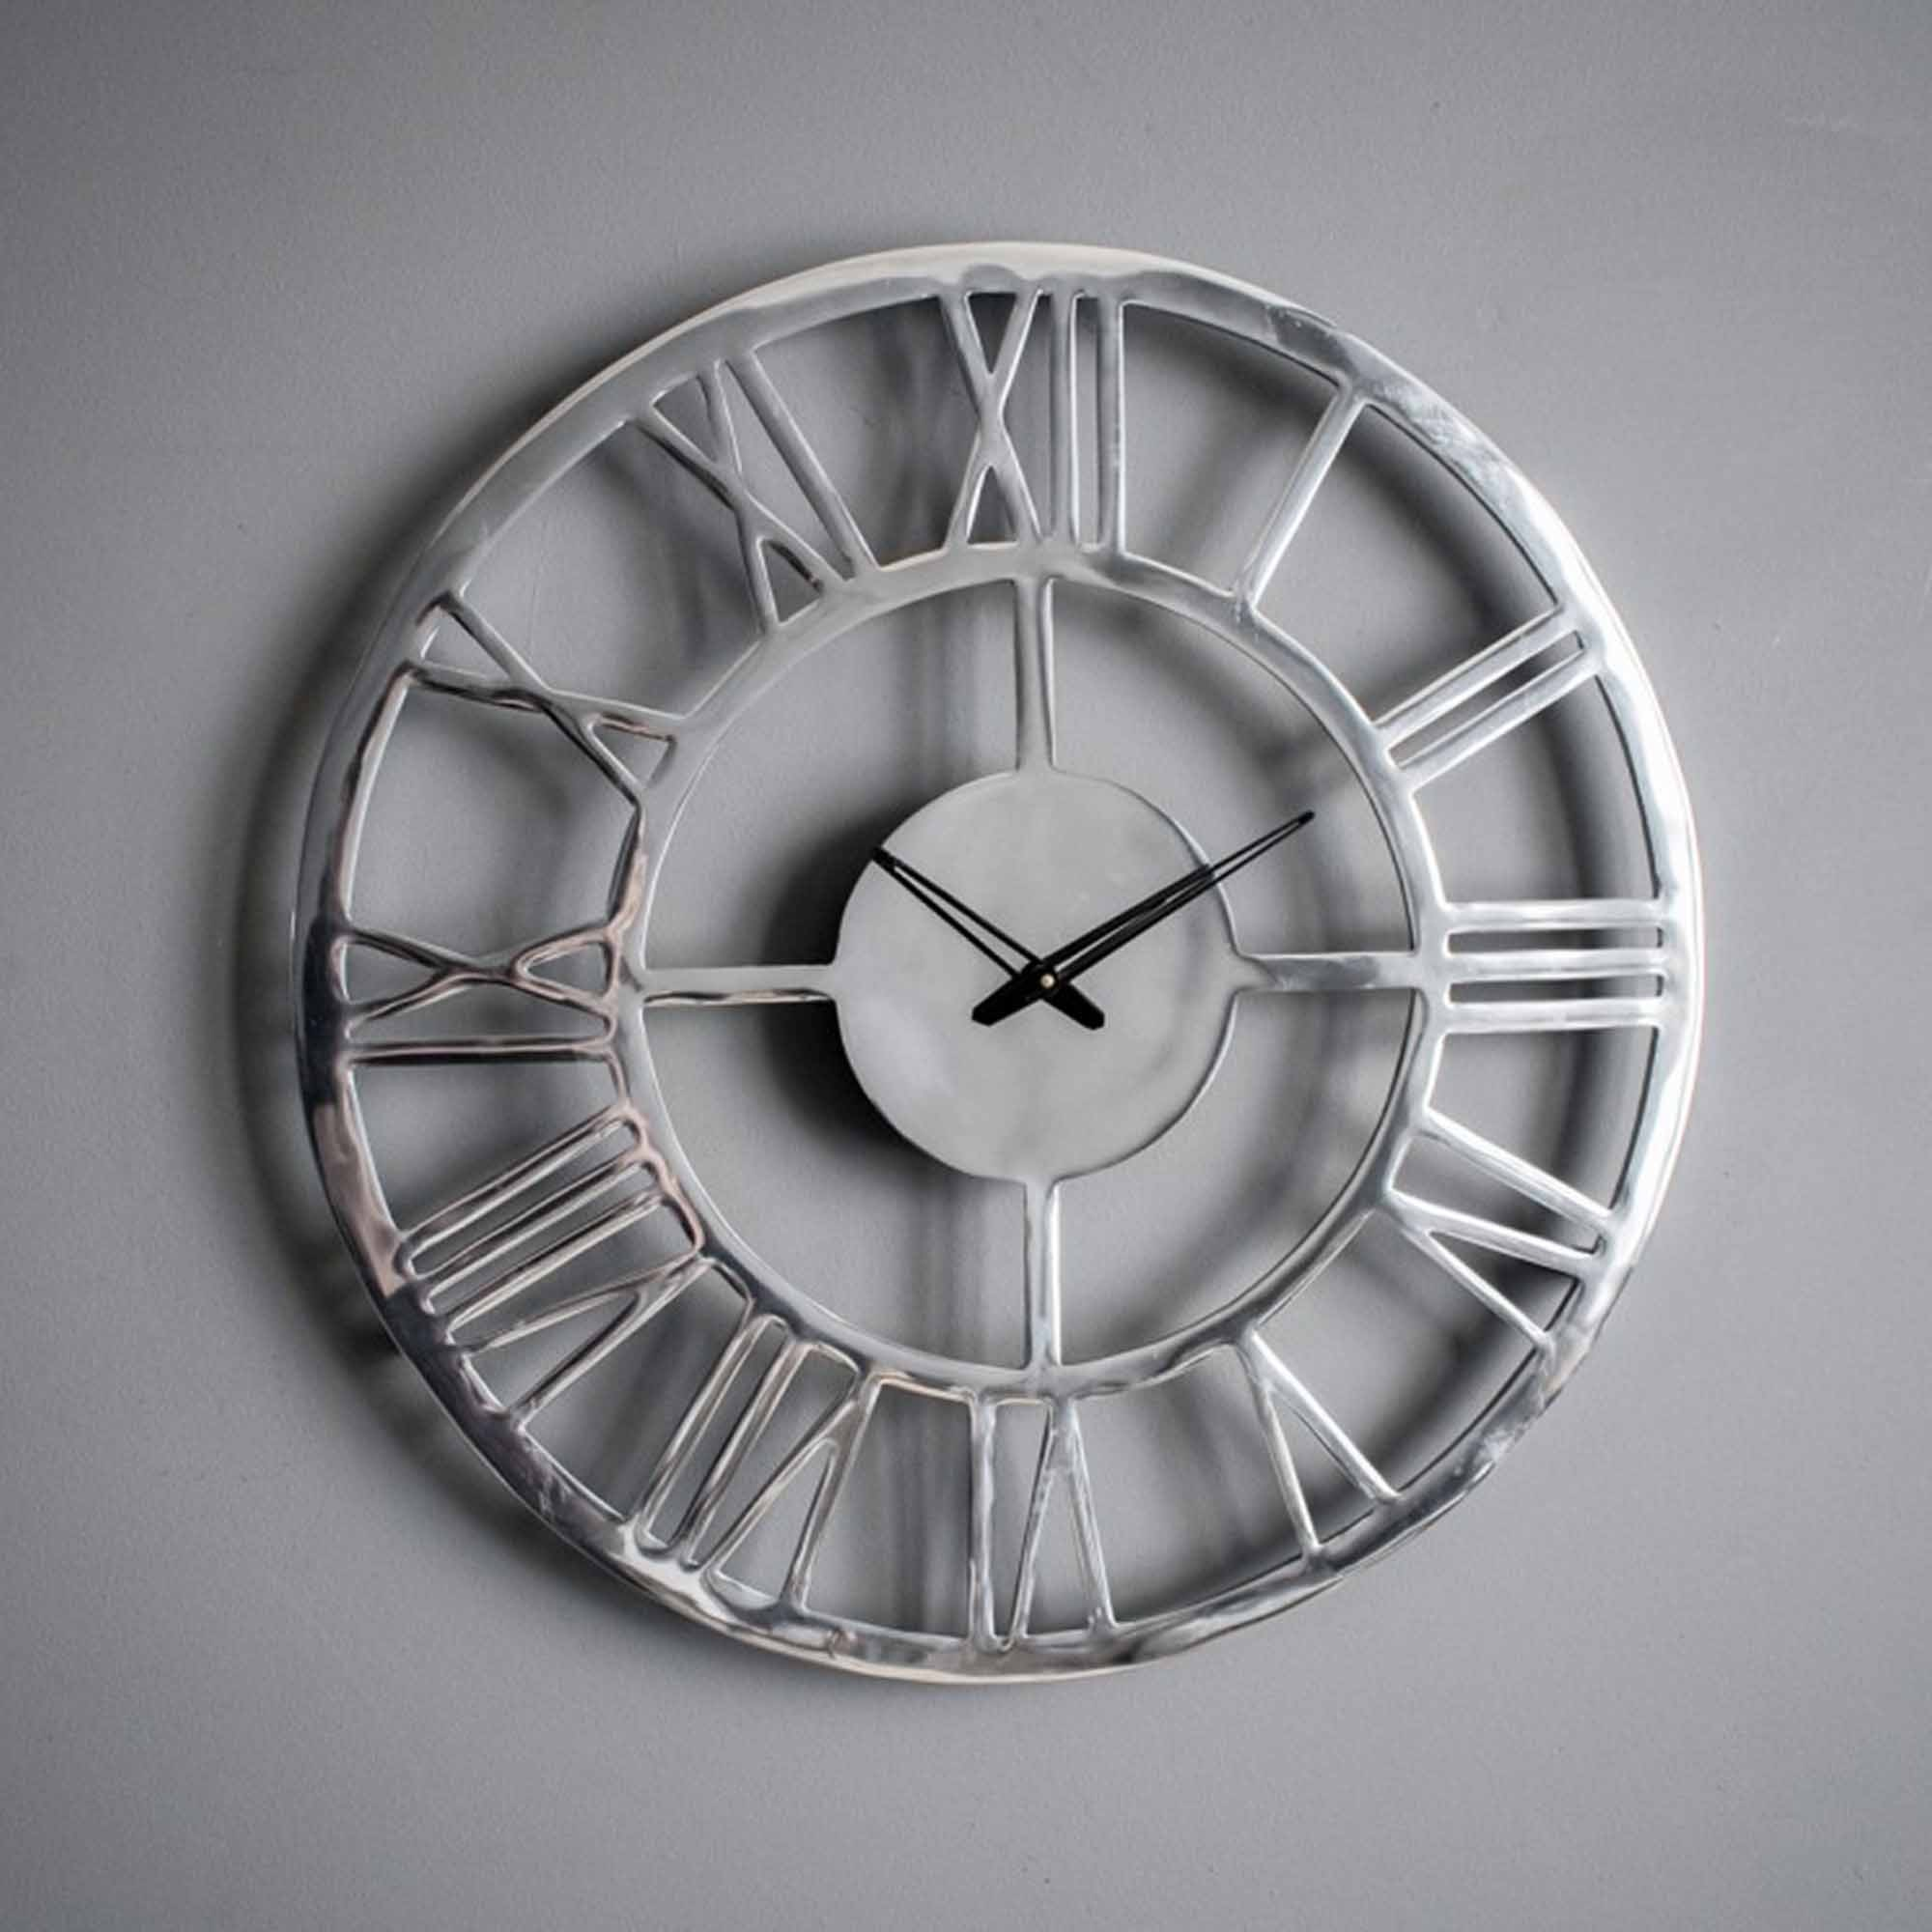 Pavia Large Wall Clock Home Accessories Wall Clock